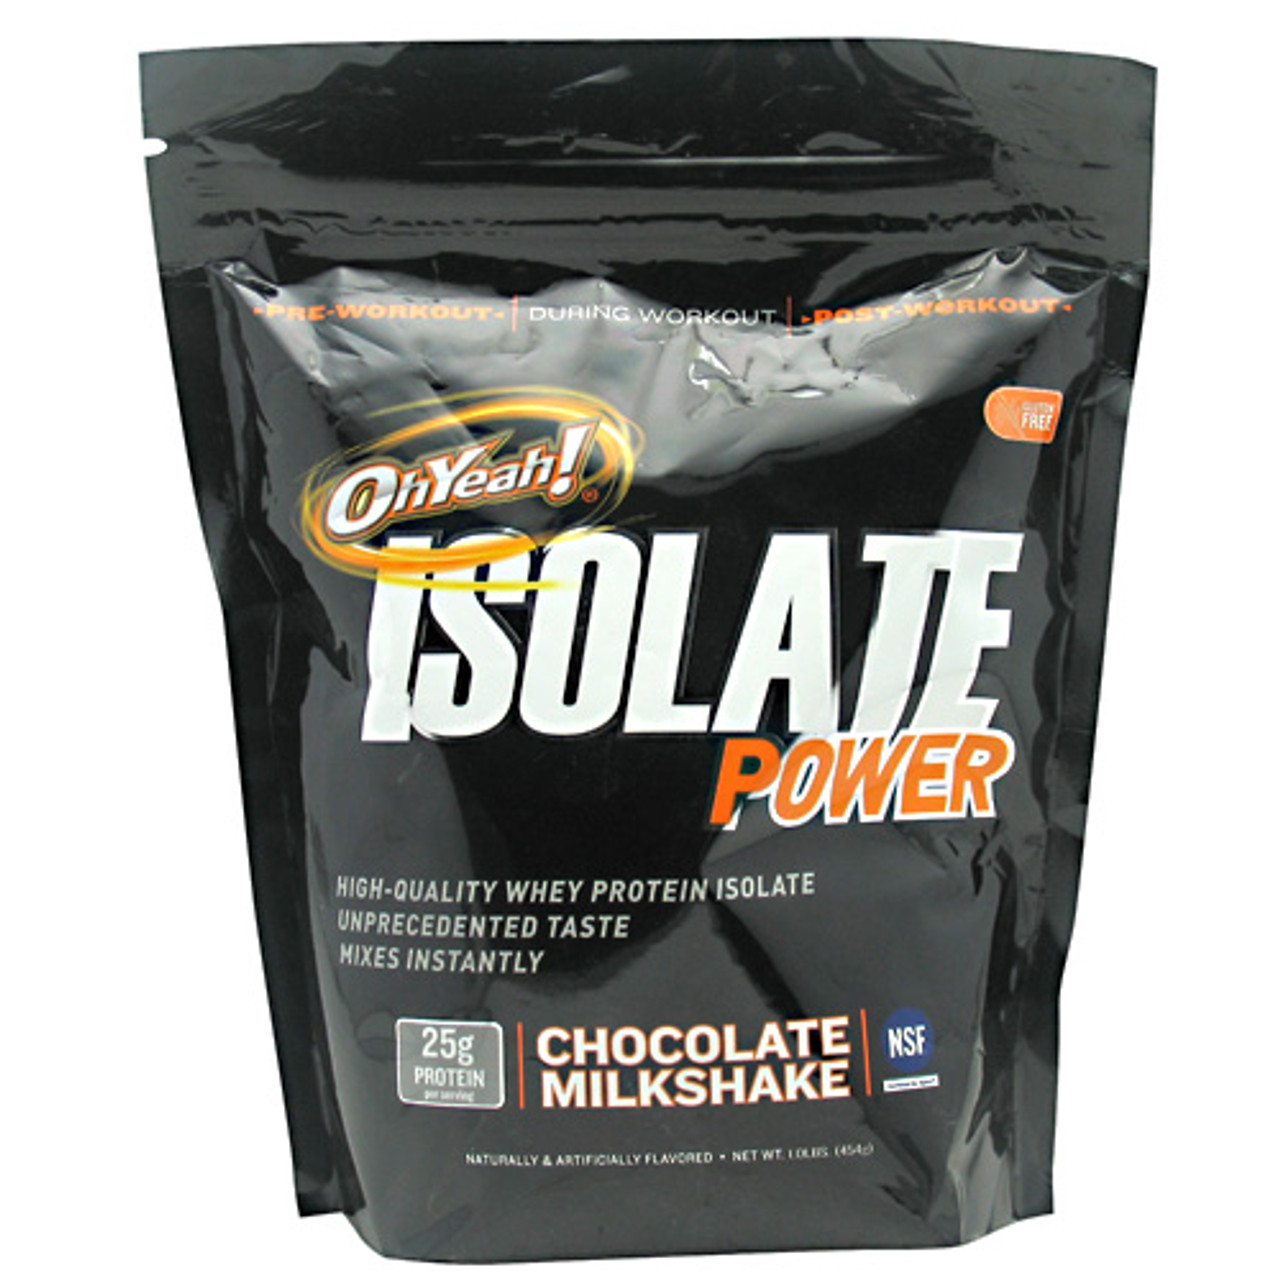 Oh Yeah! Isolate Power by ISS Research 1lb